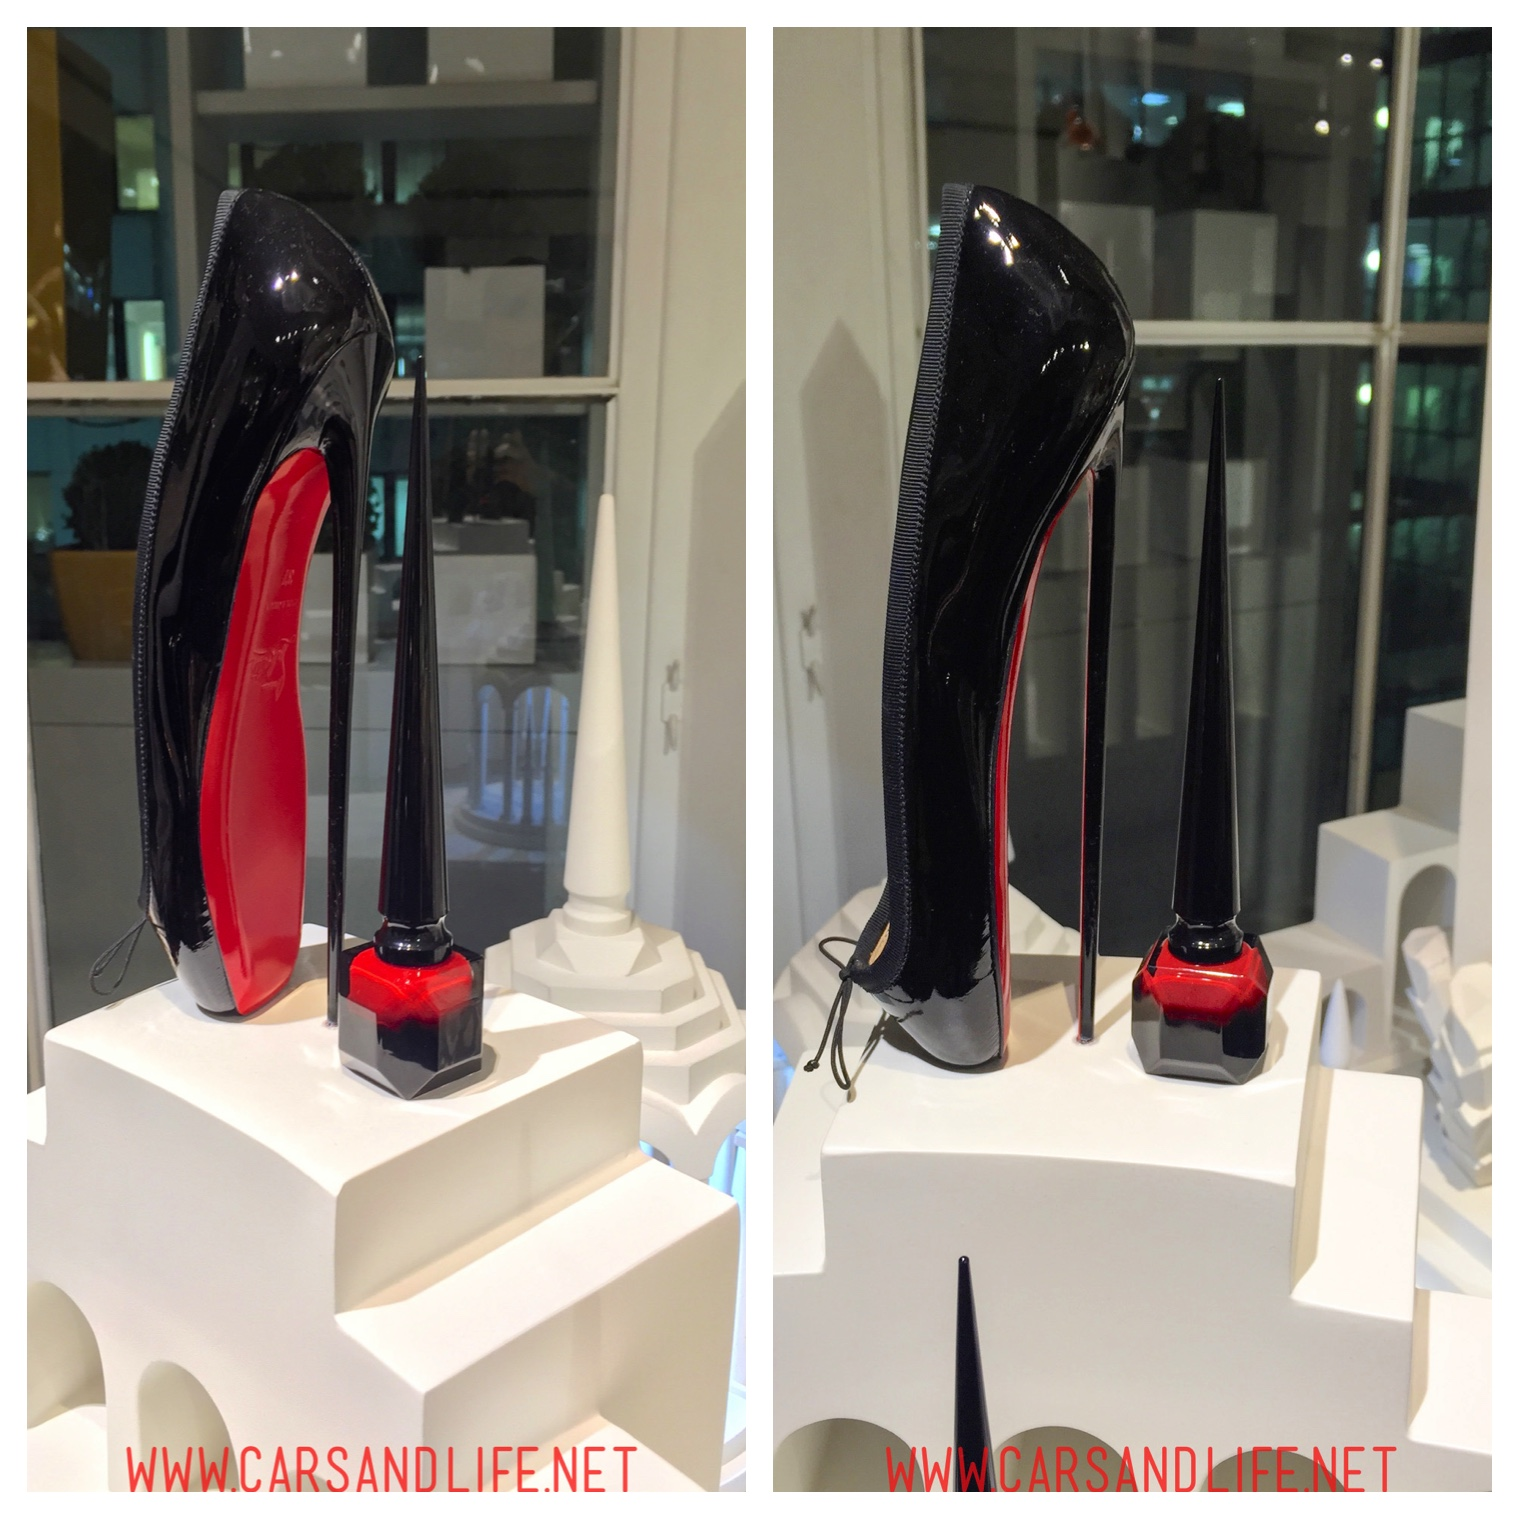 Christian Louboutin 8-inch Ballet Heels from Selfridges